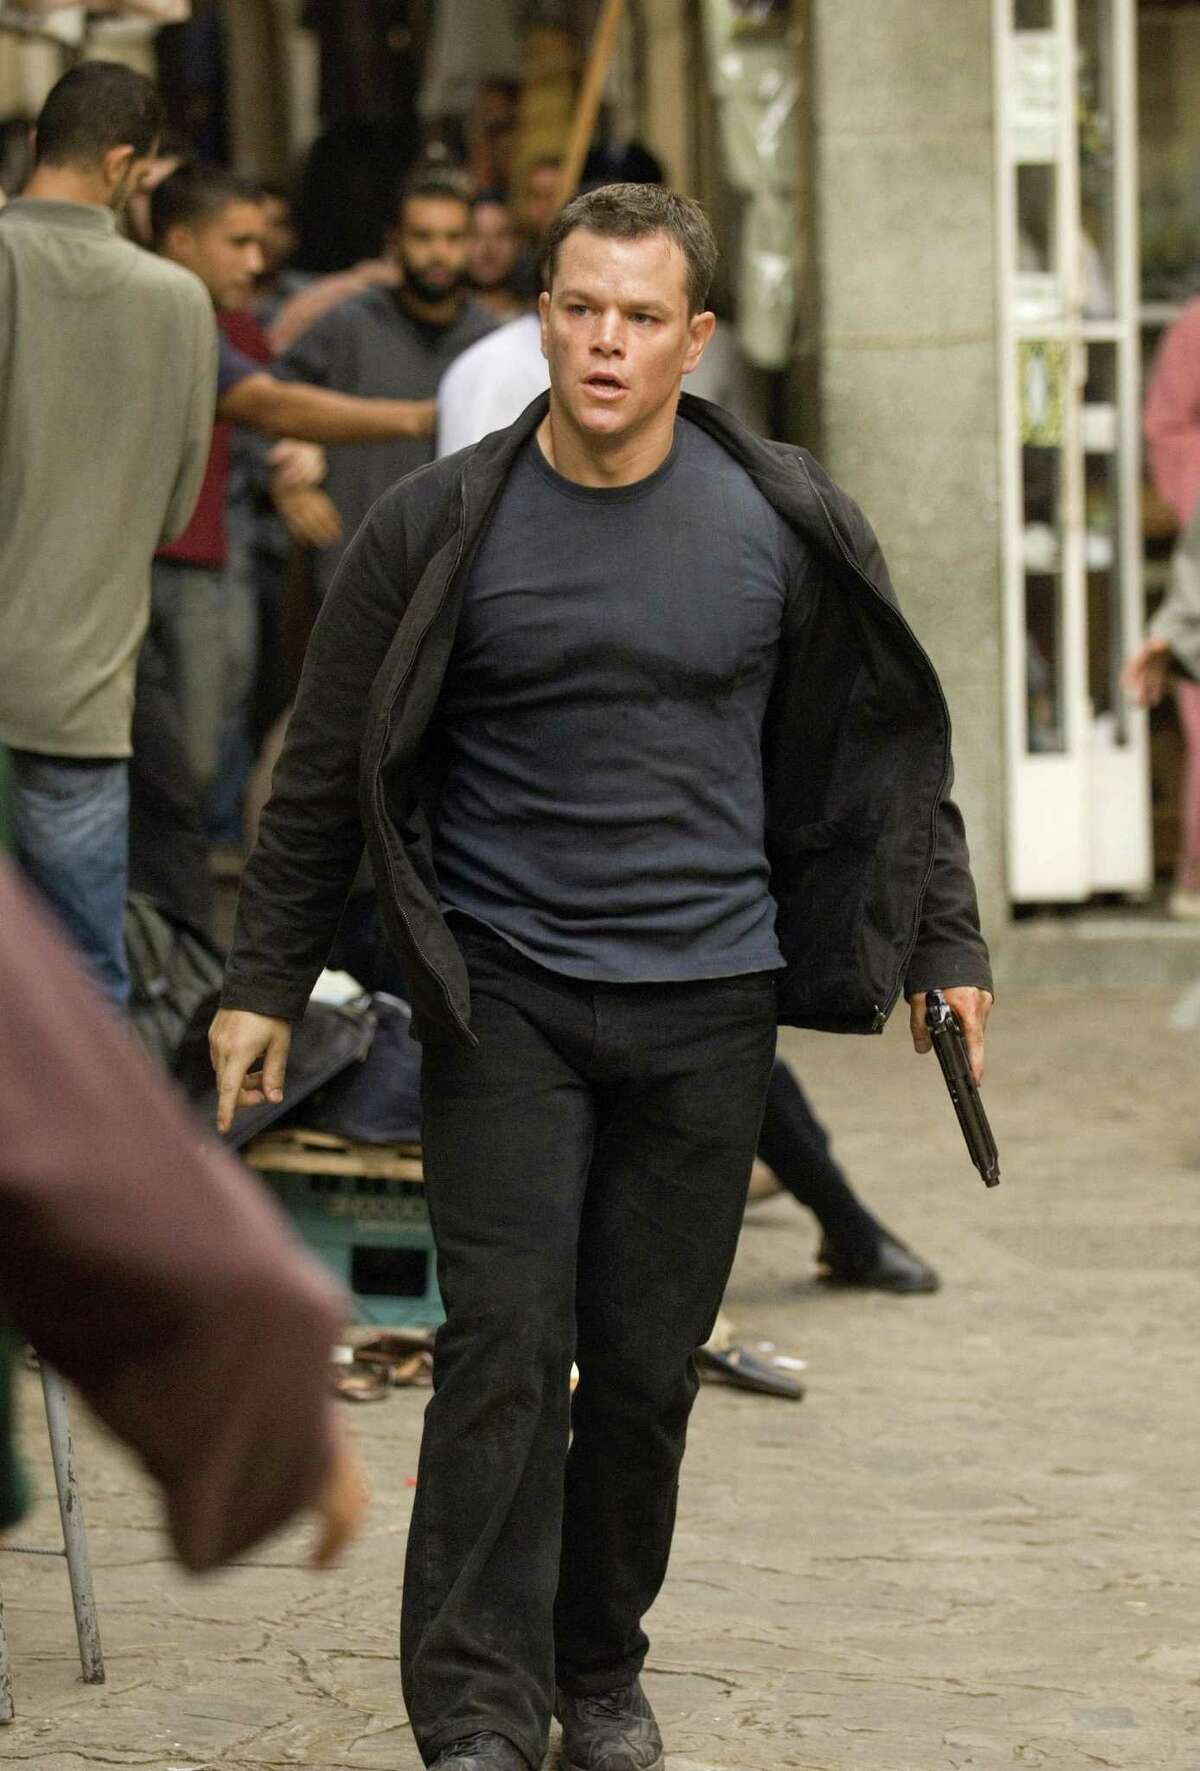 """** FILE ** In this image originally released by Universal Pictures, Matt Damon is shown as the character Jason Bourne in """"The Bourne Ultimatum."""" One of the Museum of Modern Art's latest film acquisitions isn't an art-house experiment by the likes of Andy Warhol or Michelangelo Antonioni. It's the spy-action blockbuster """"The Bourne Identity"""" and its sequels. This week the museum is screening the films and hosting a panel discussion with """"Bourne"""" director/producer Doug Liman and a noted neuroscientist to talk about memory, identity and the mysterious workings of the brain. (AP Photo/Universal Pictures, Jasin Boland, file) ** NO SALES **"""